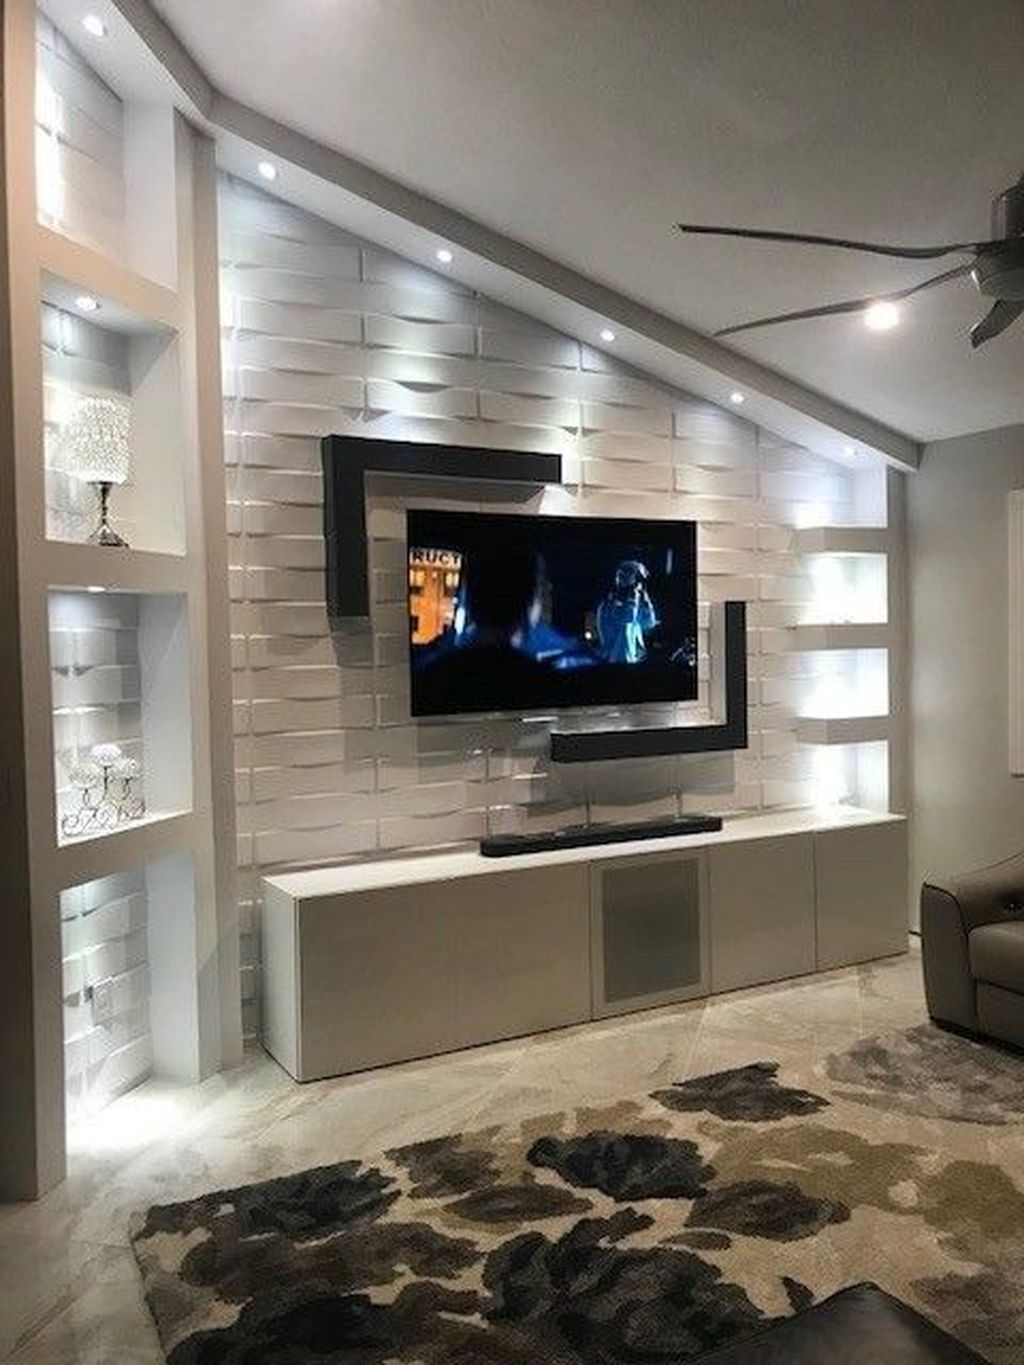 Inspiring Drywall Design Ideas To Beautify Your Interior 23